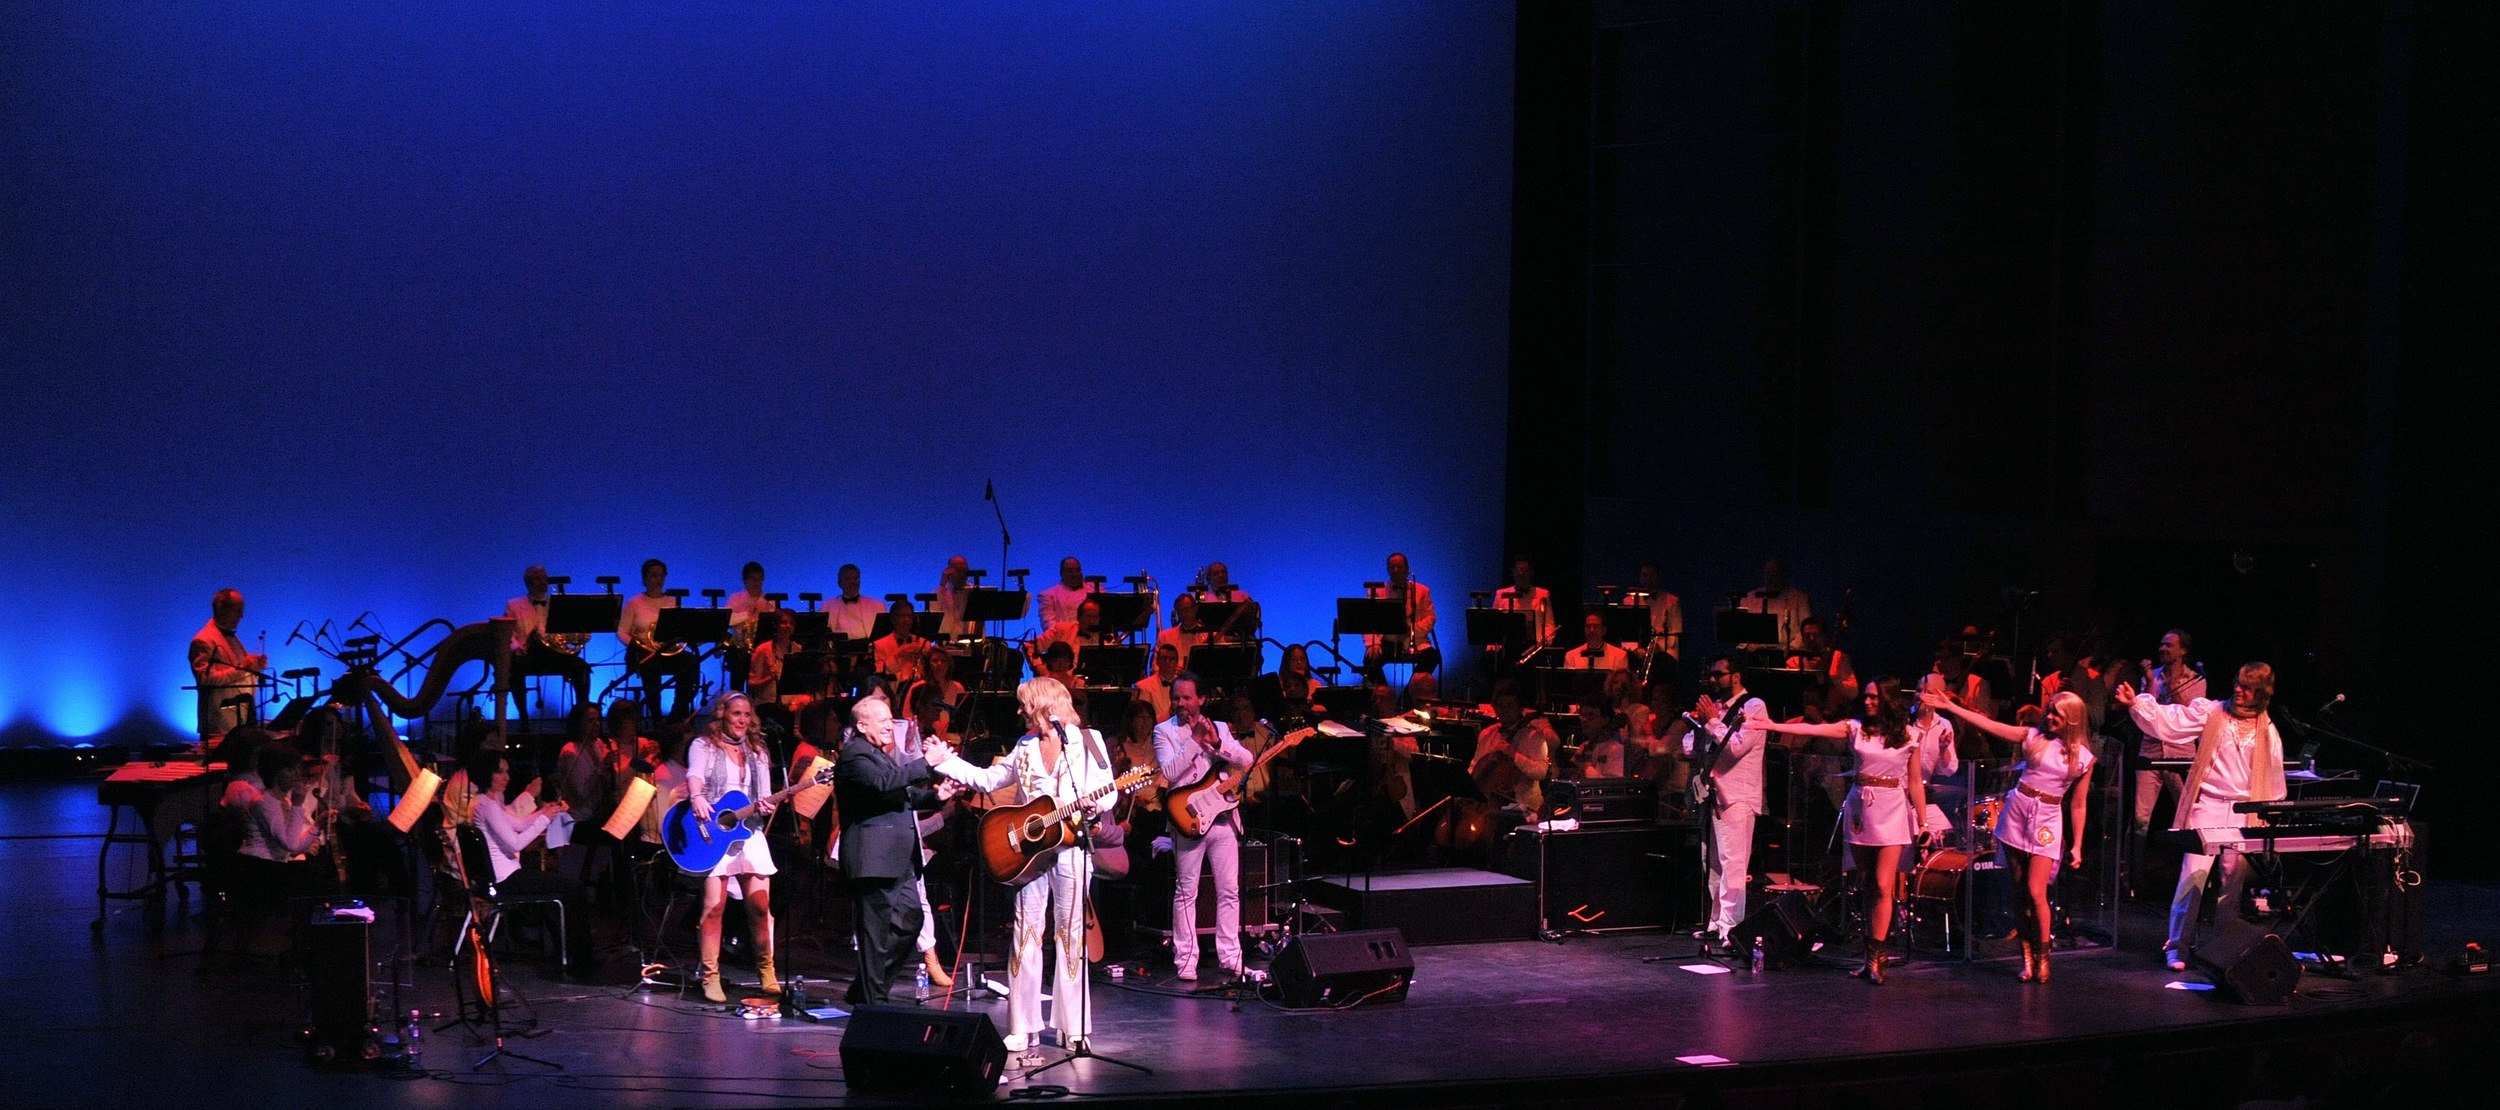 2012, Waterloo, bows onstage banner, with the Oklahoma City Philharmonic.jpg